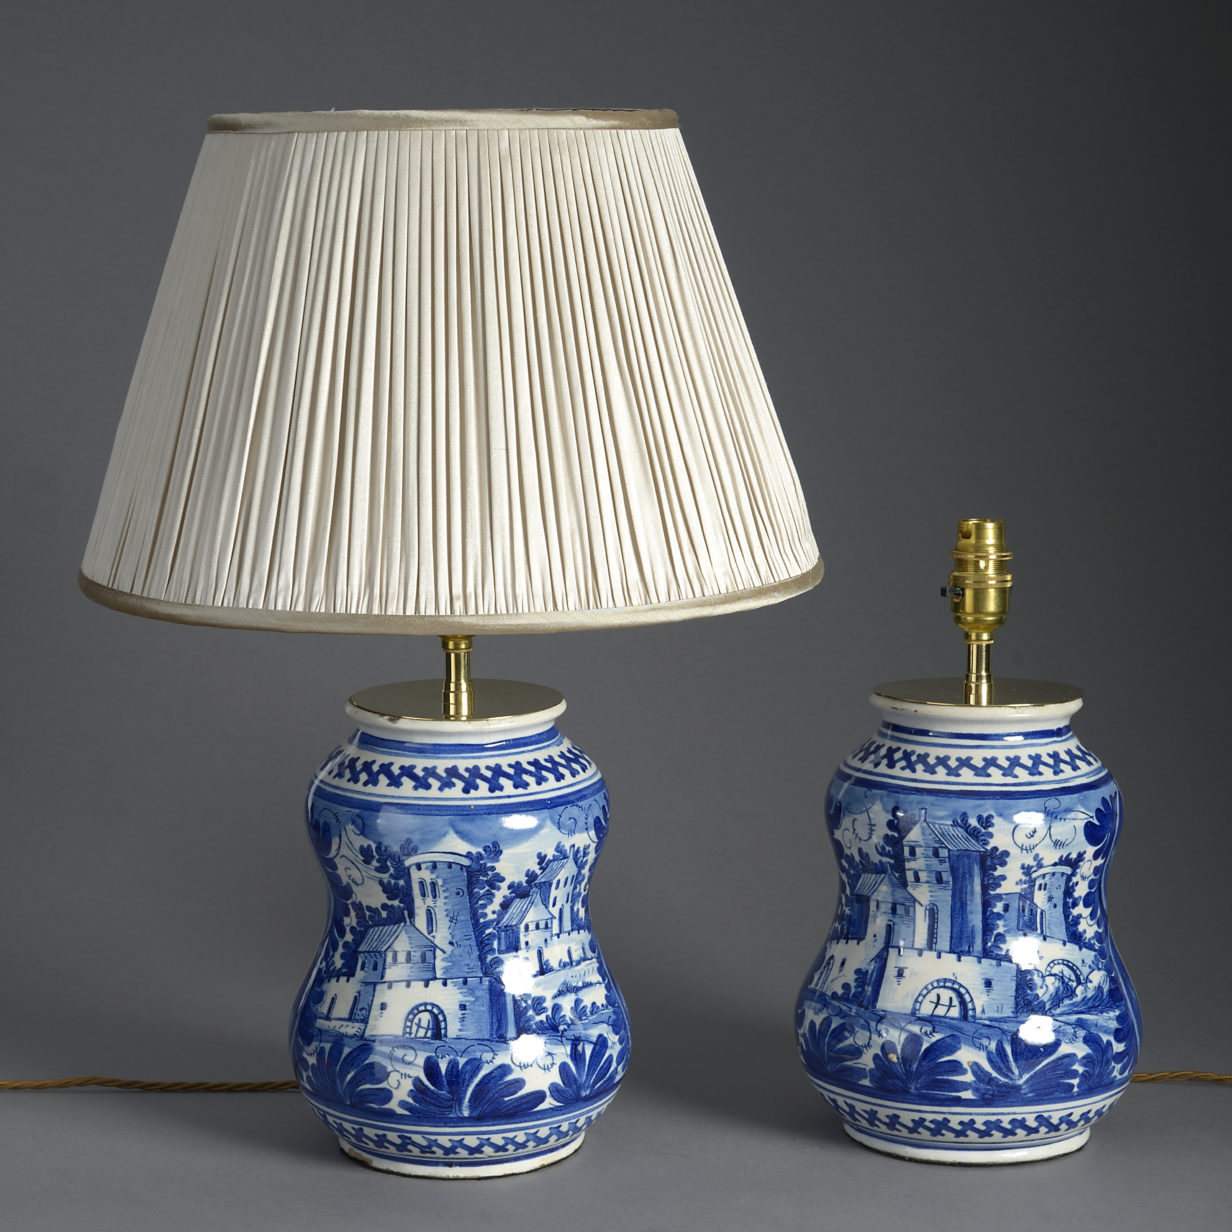 Pair of Blue and White Delft Vase Lamps